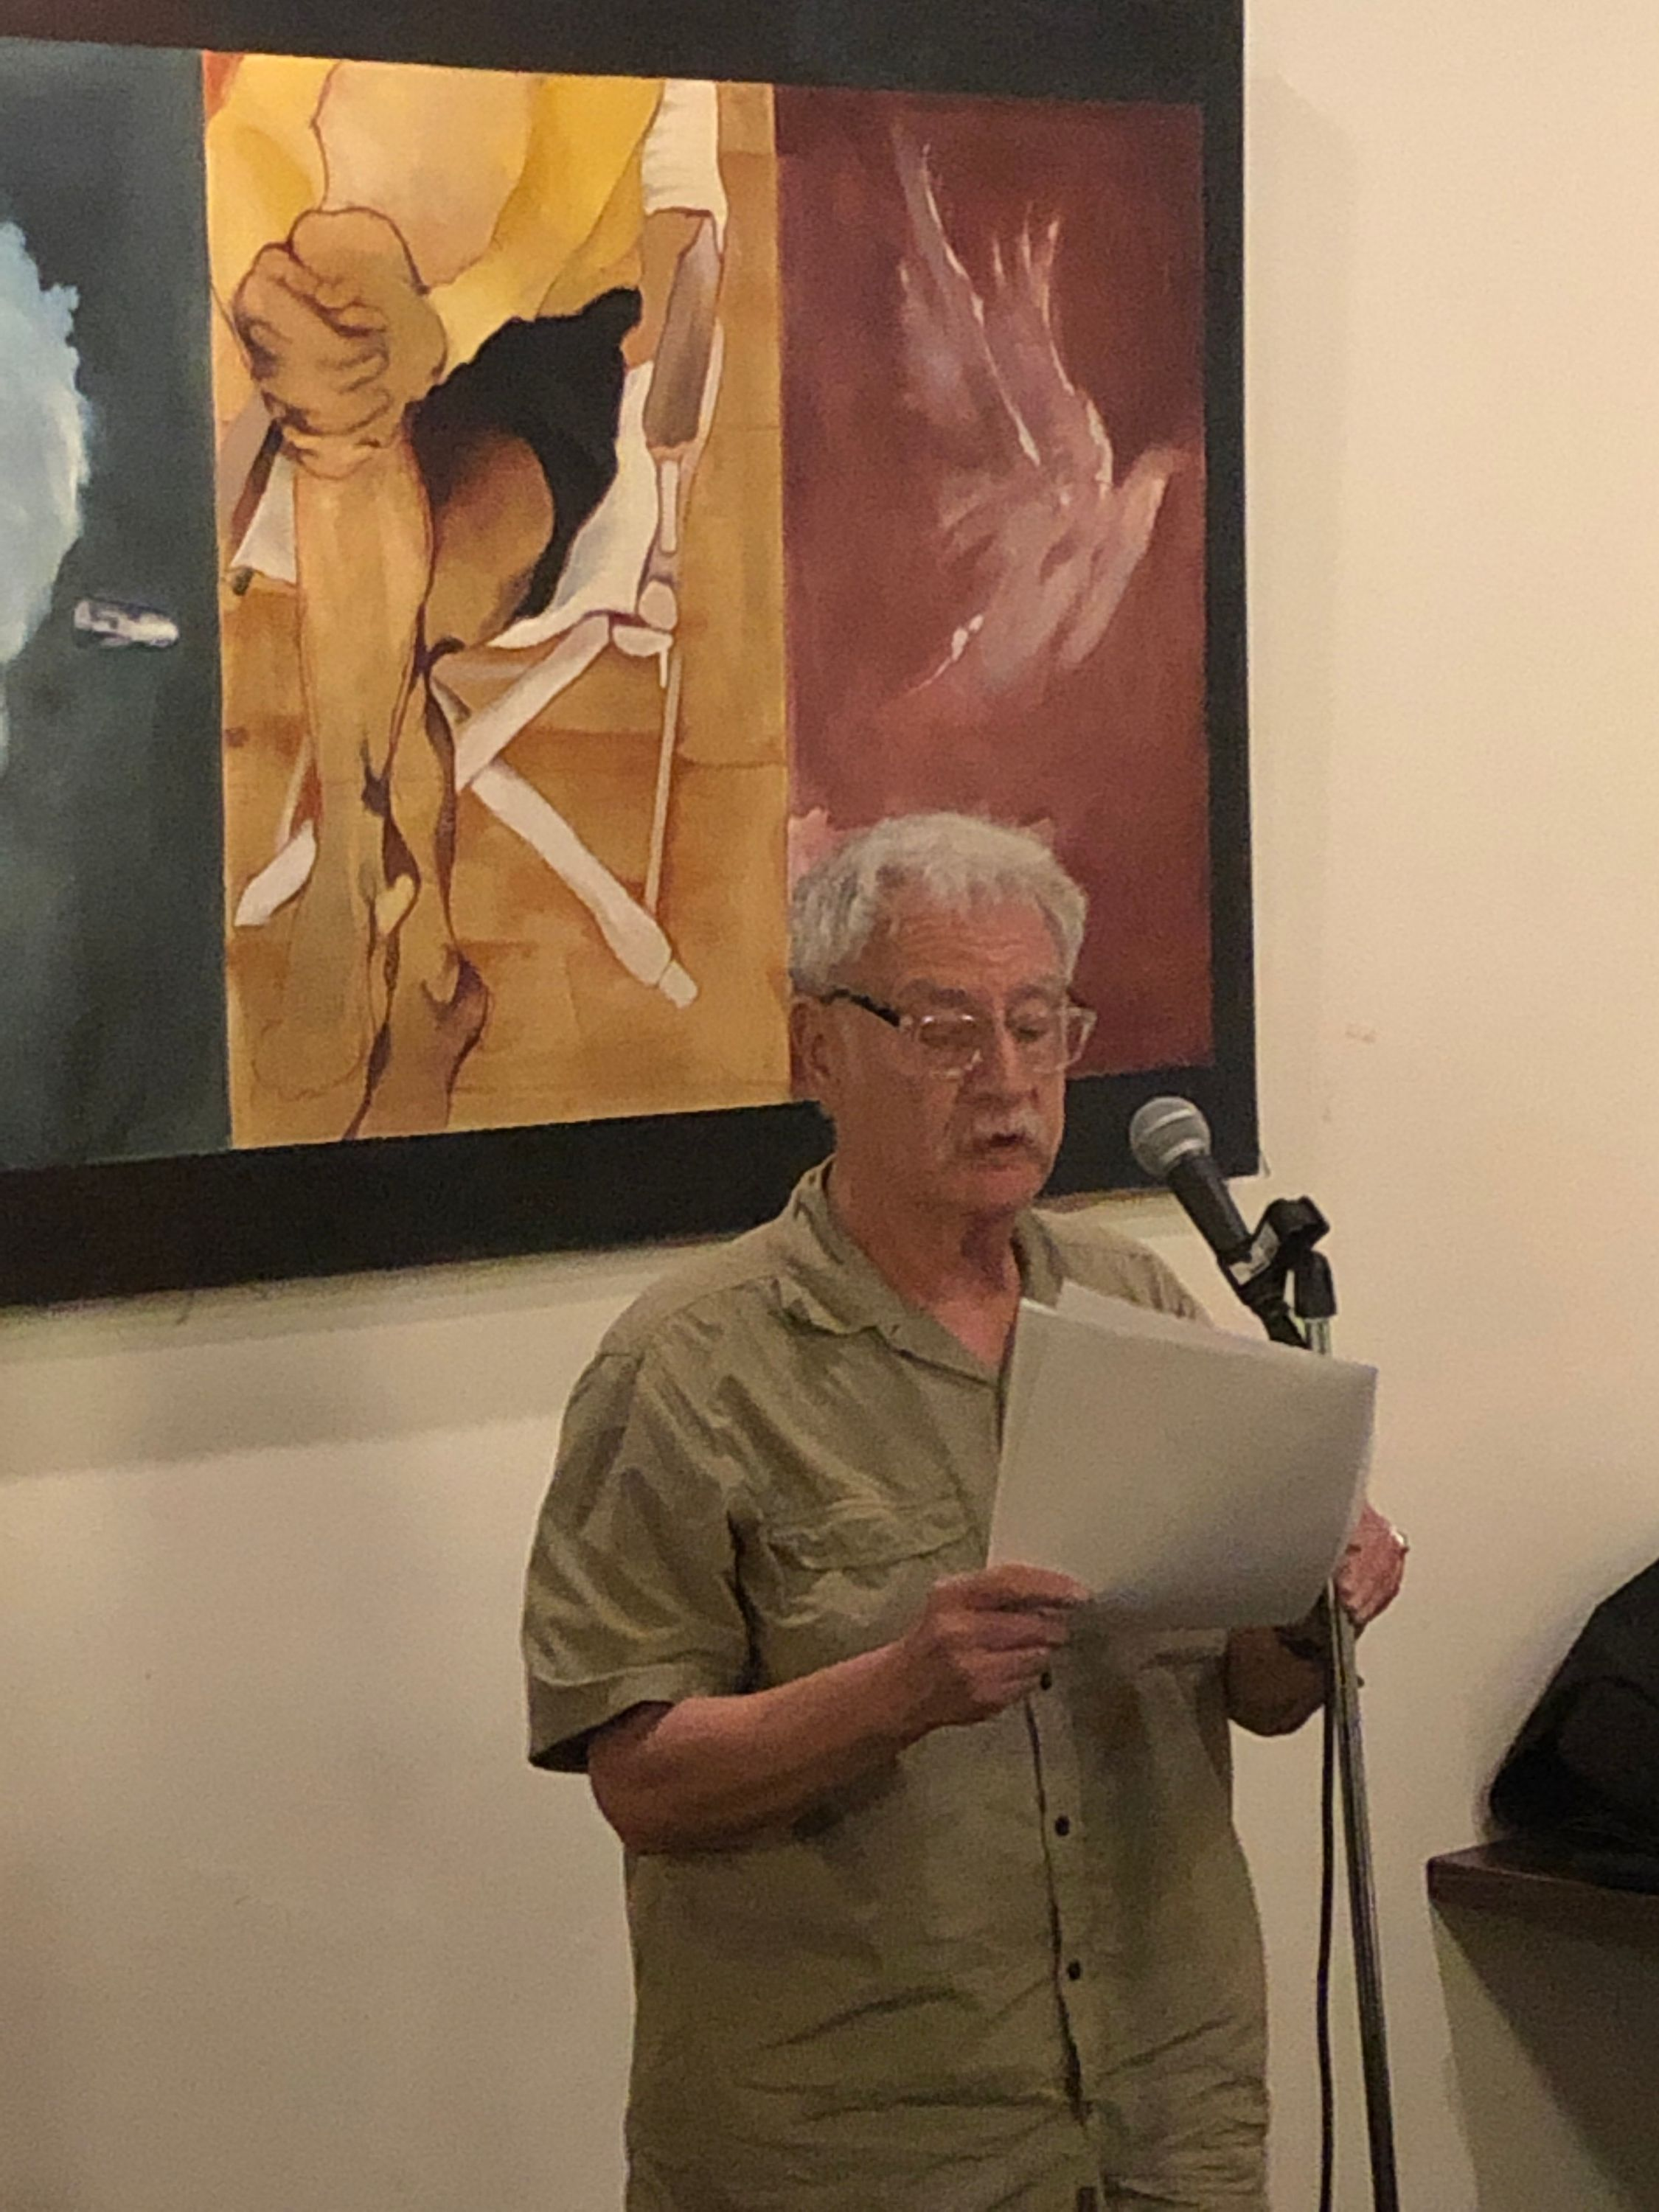 henry sussman at first tuesdays, sept 3